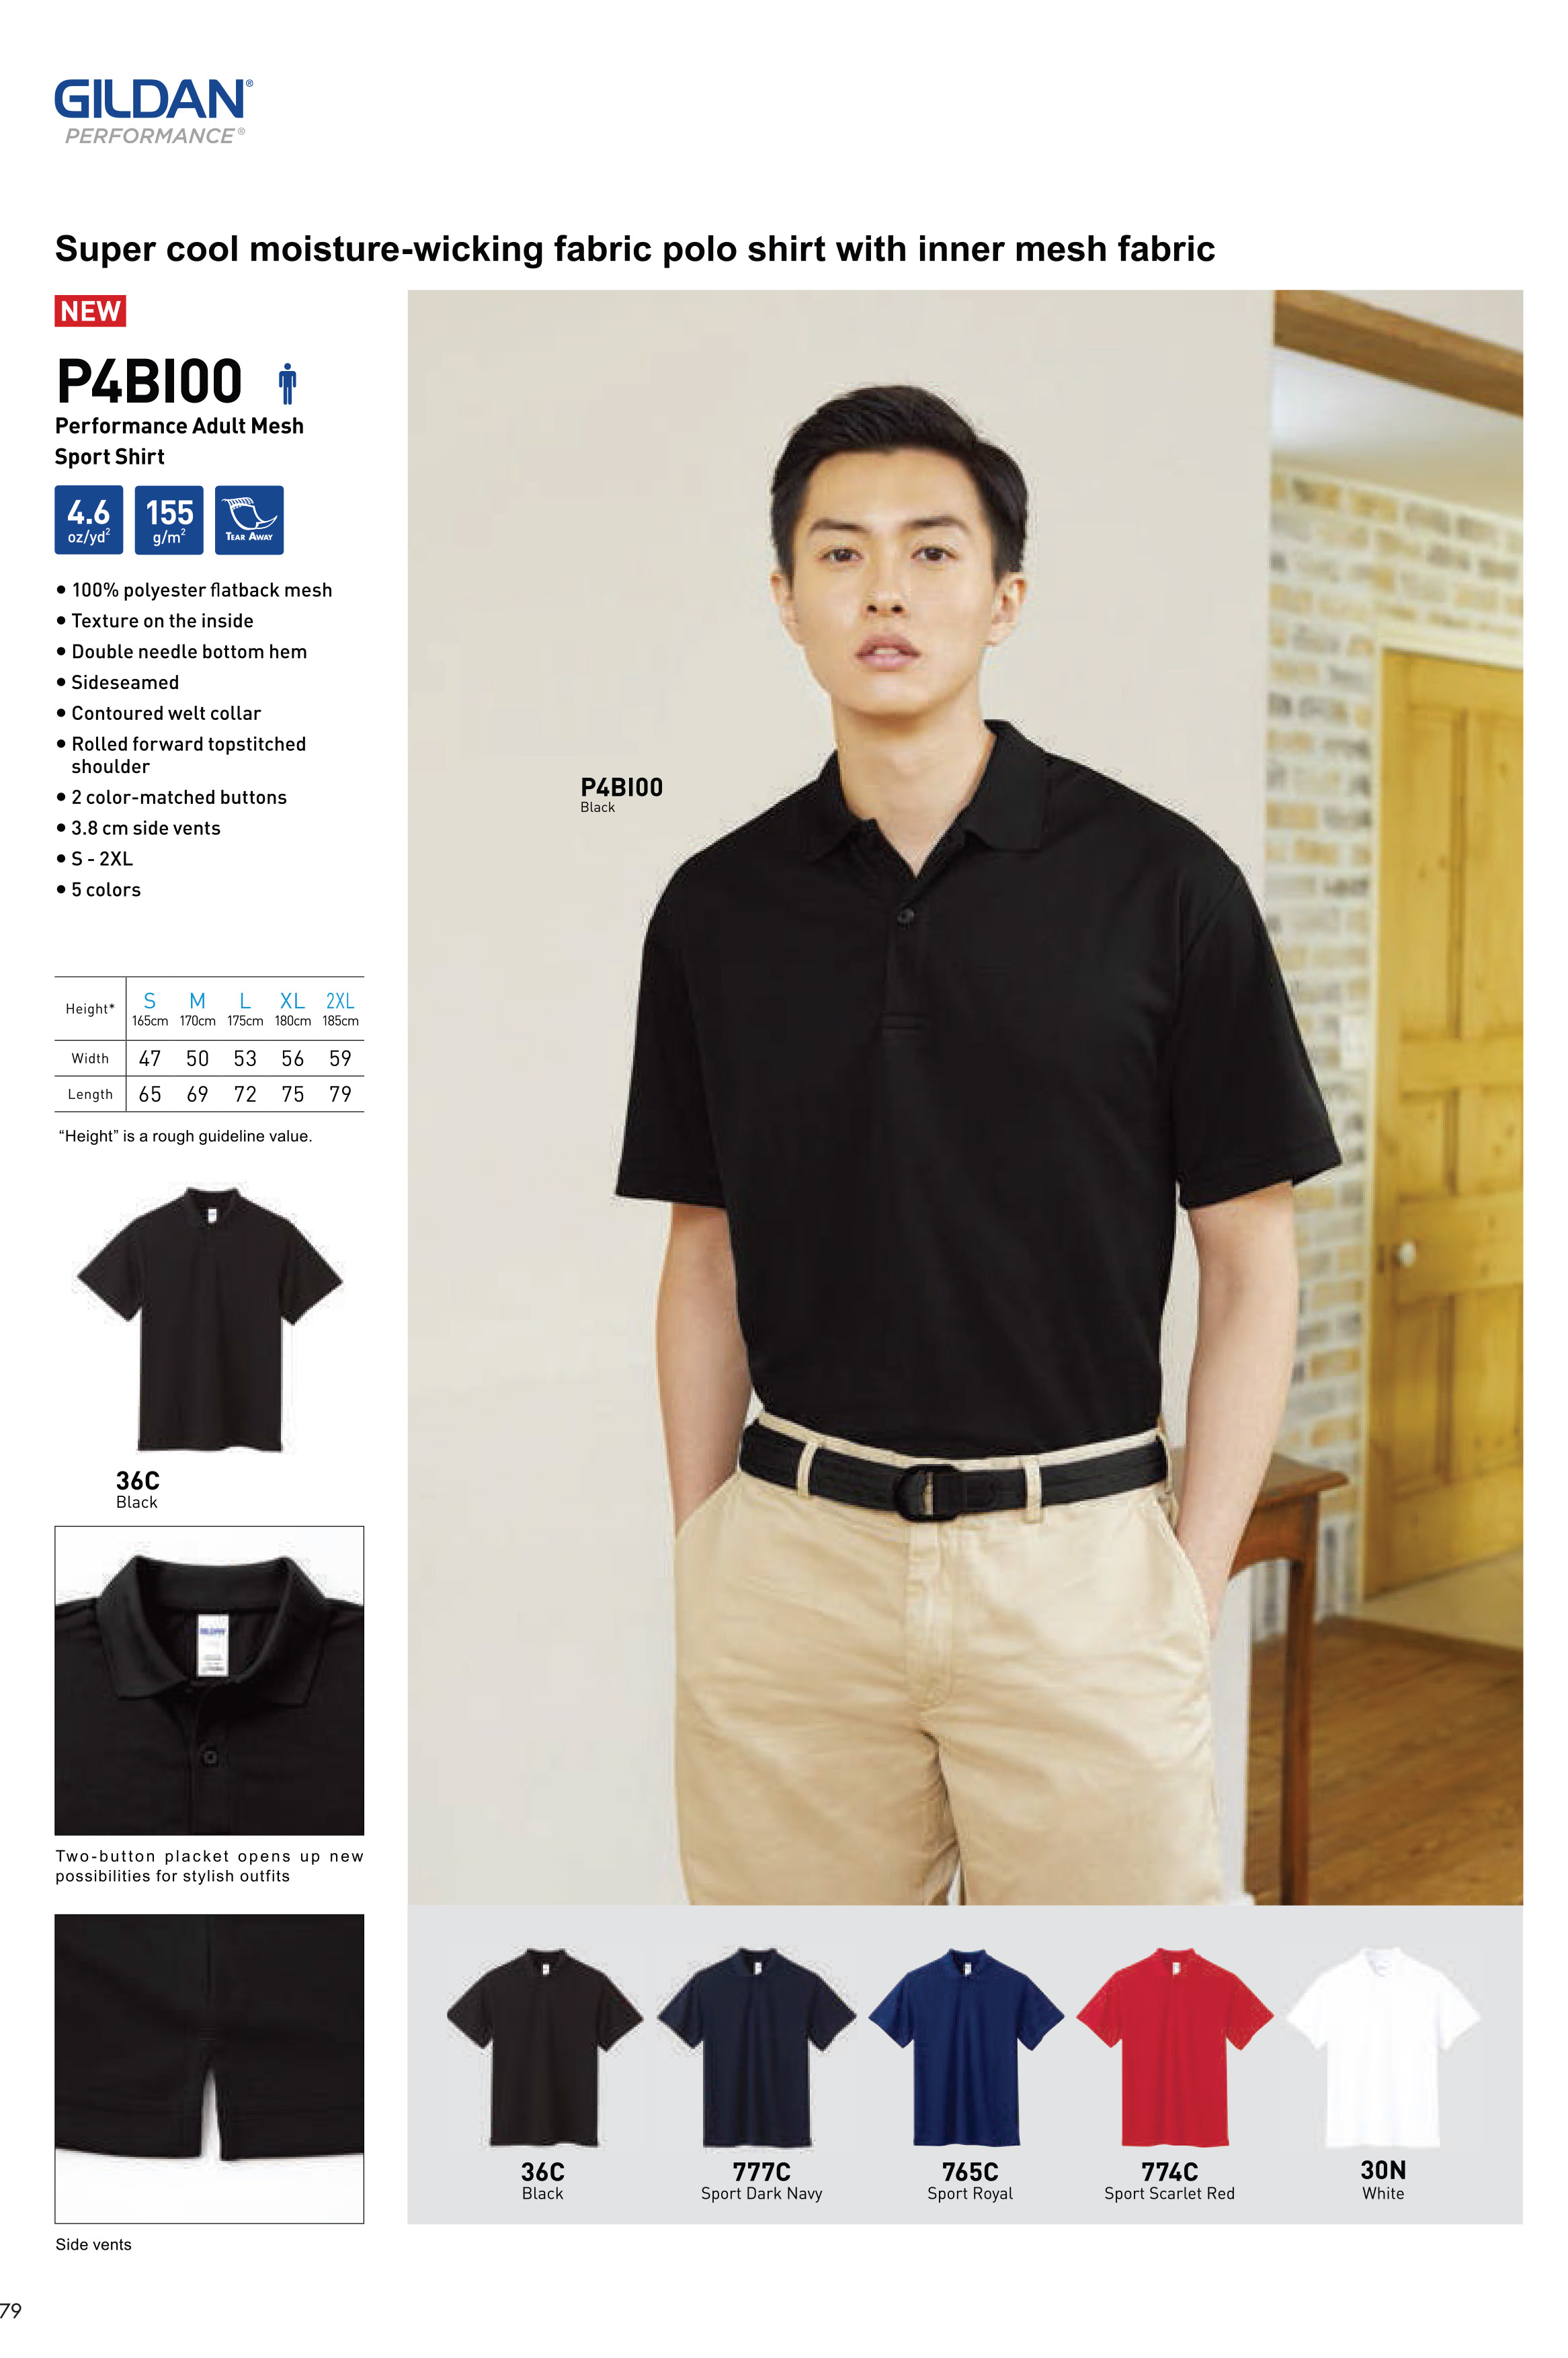 P4B100 DRI FIT POLO T-SHIRT